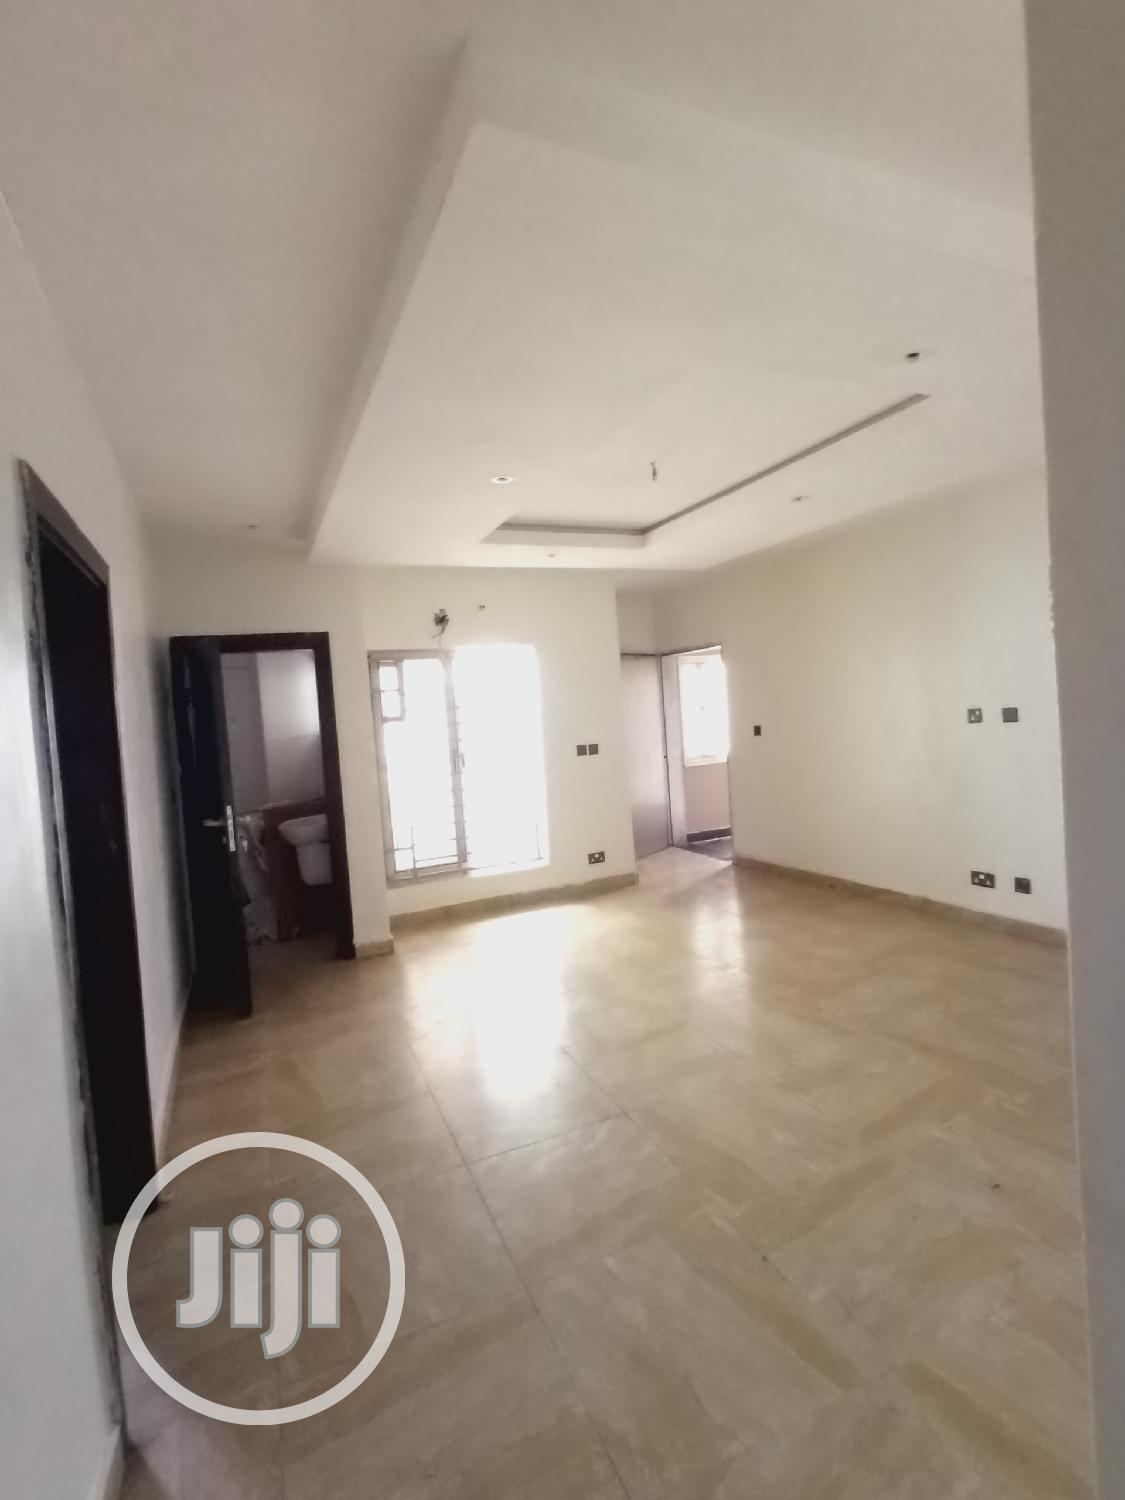 2bedroom Flat For Sale